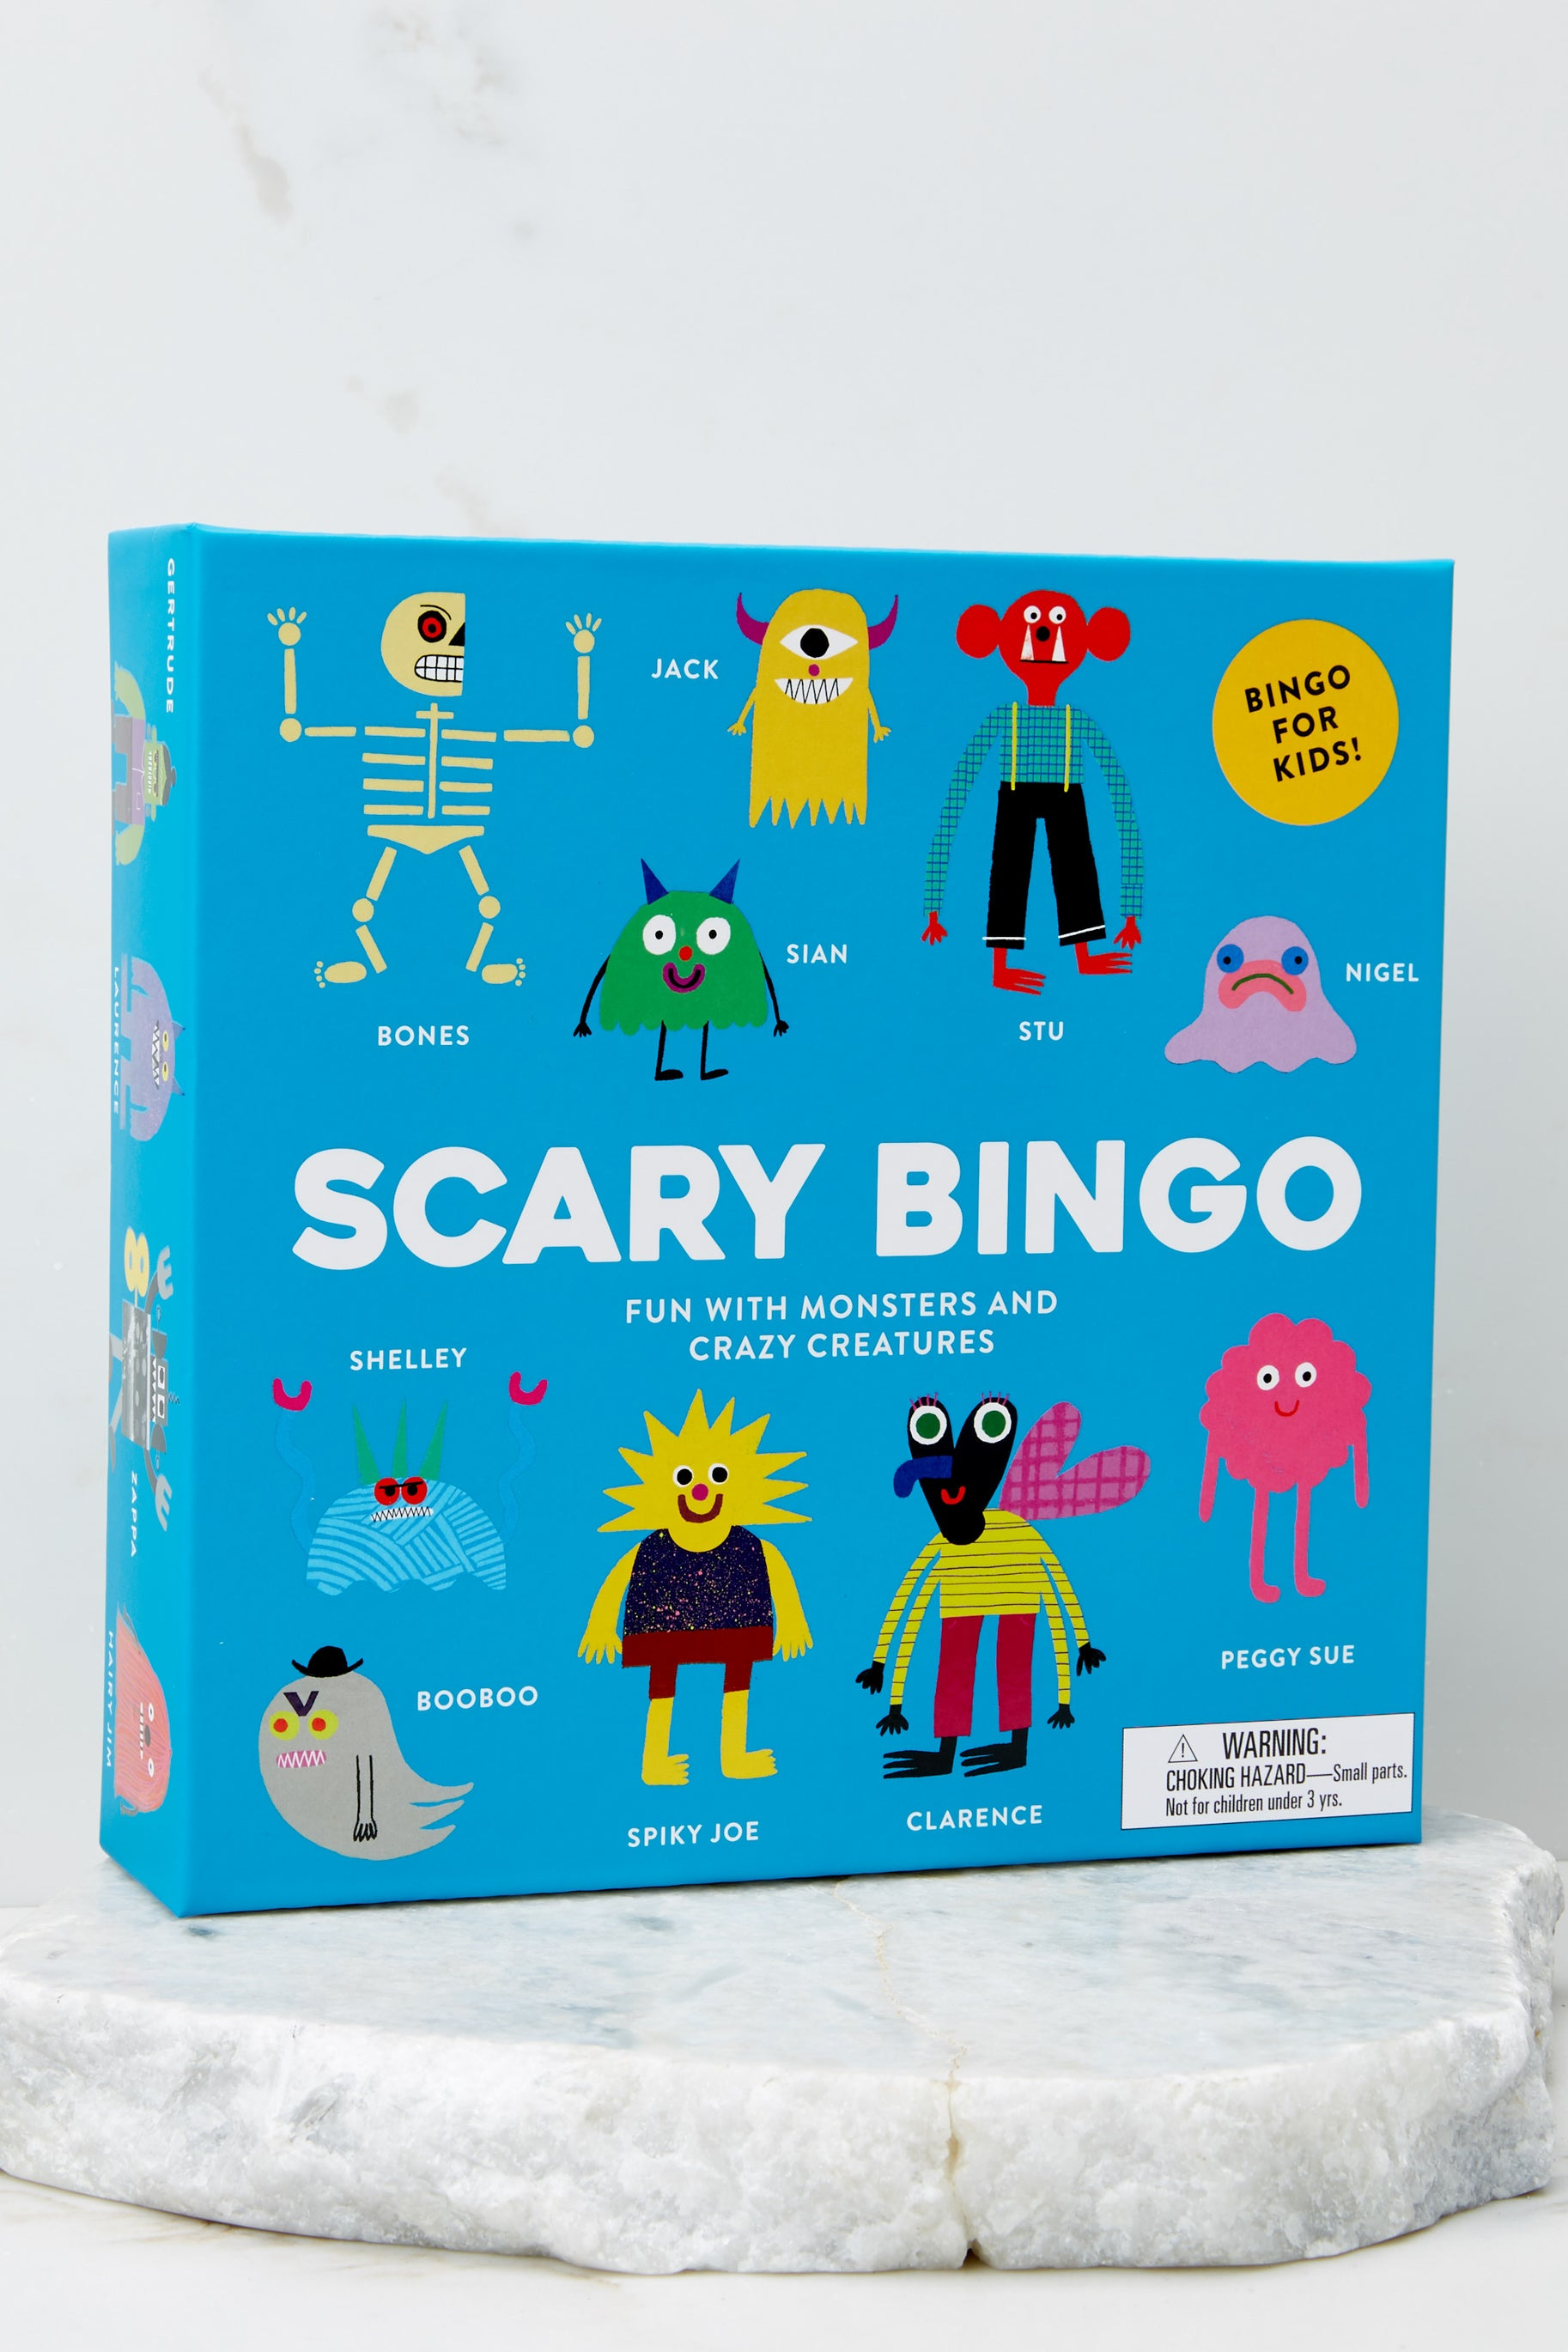 1 Scary Bingo Game at reddress.com